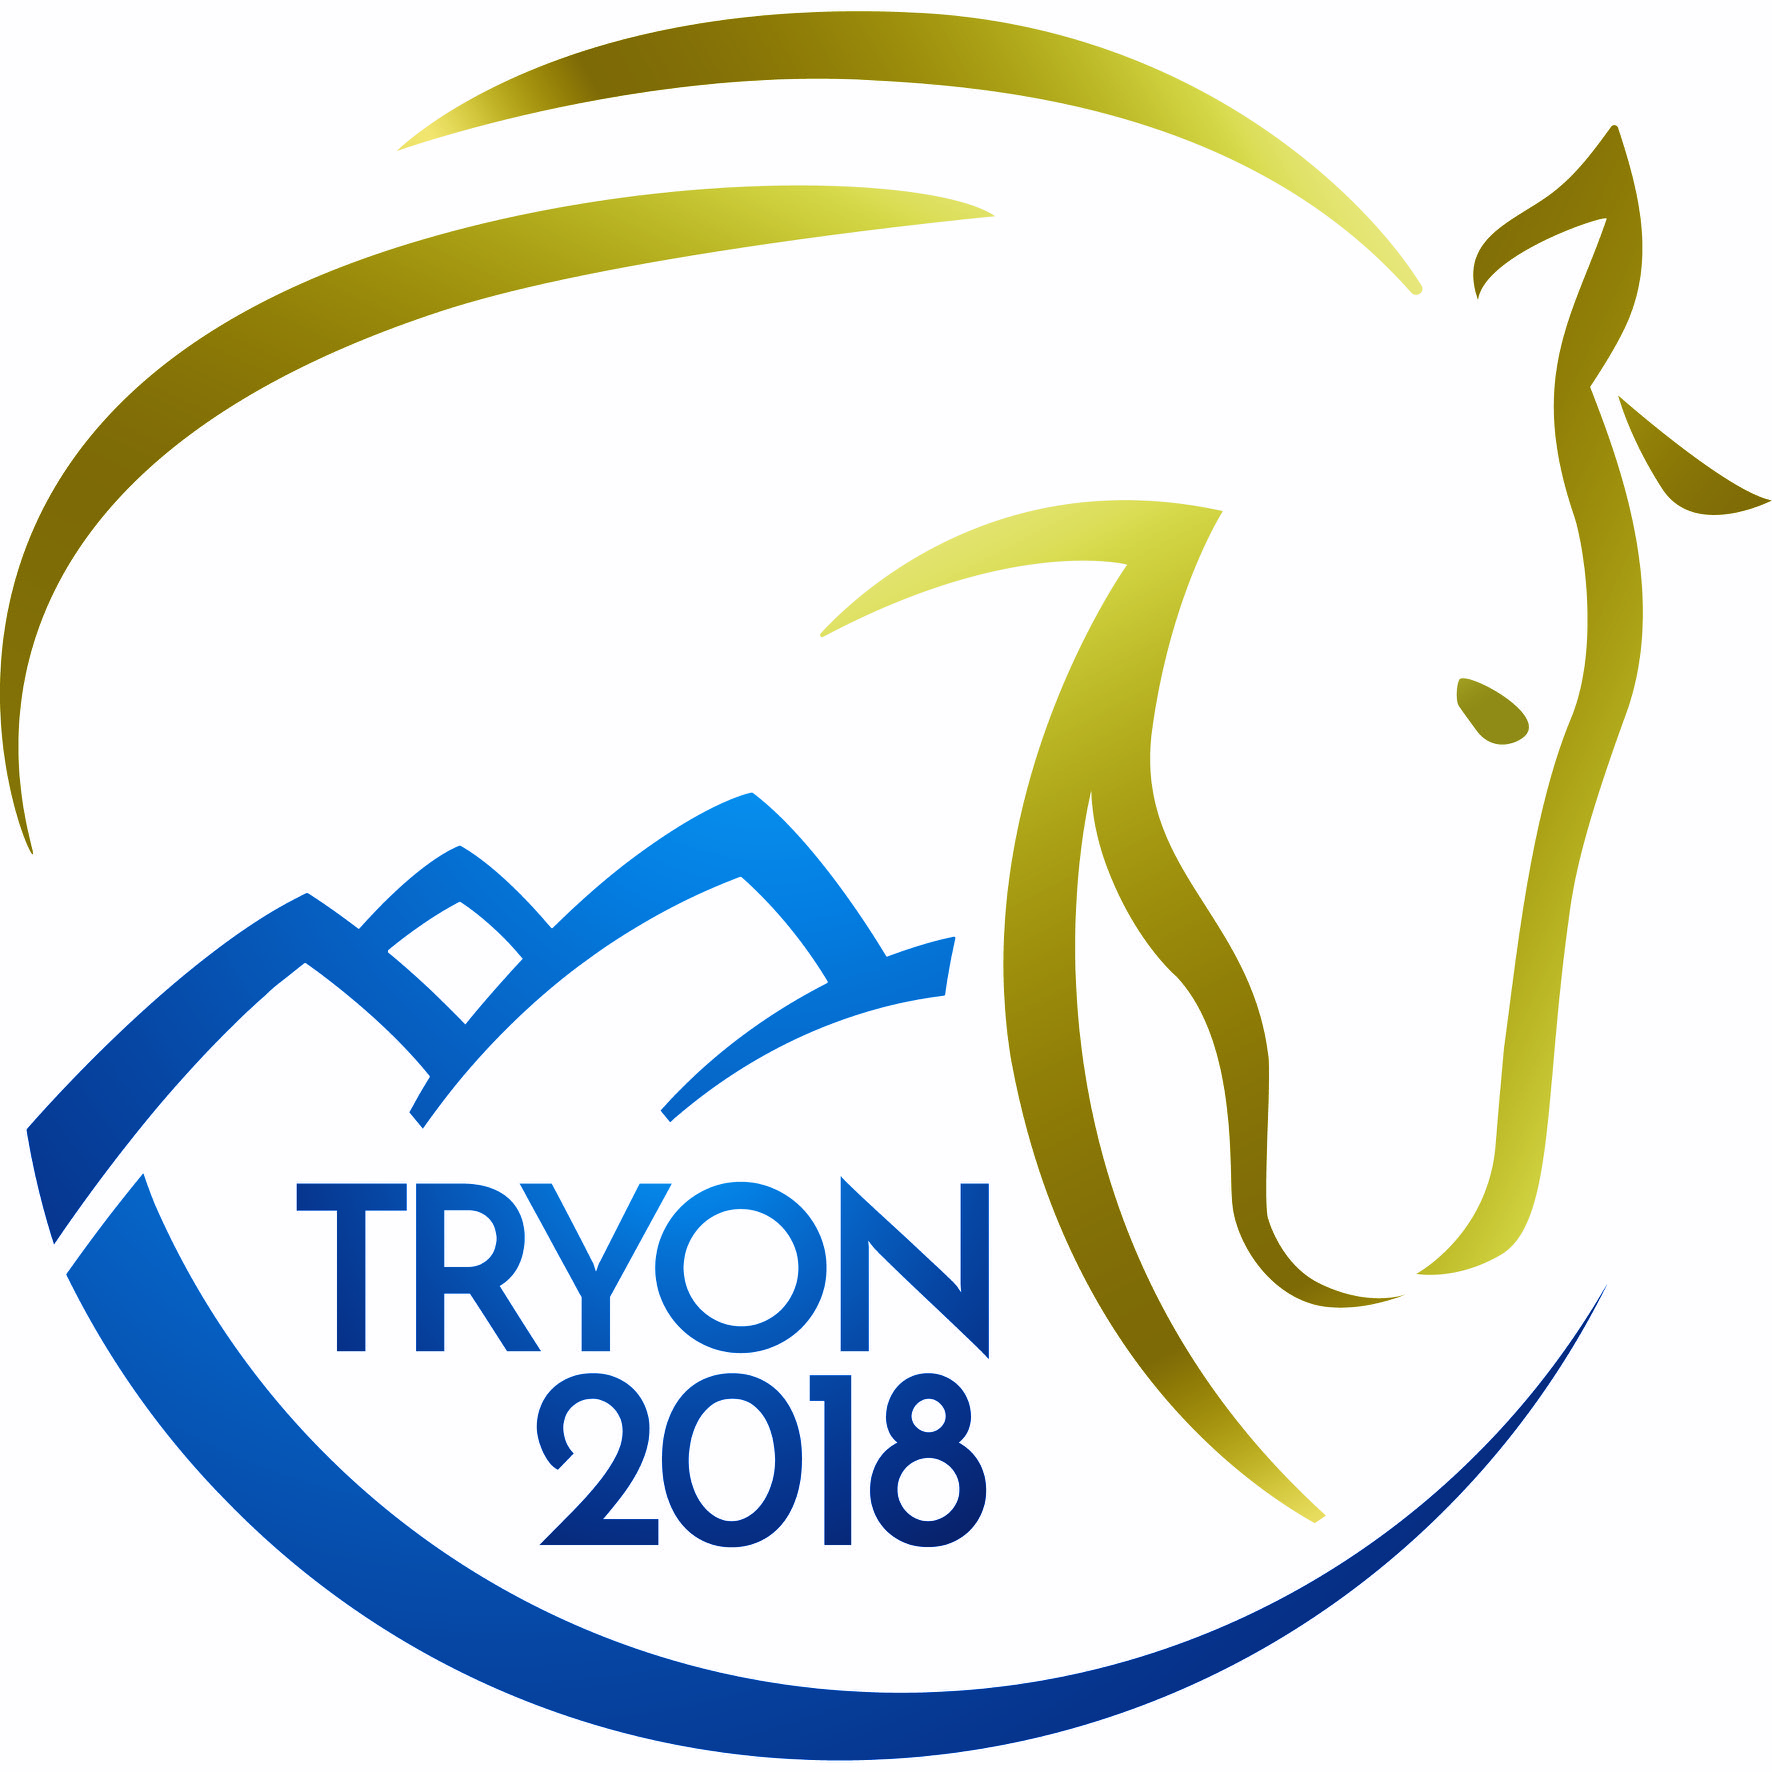 FEI World Equestrian Games Tryon 2018